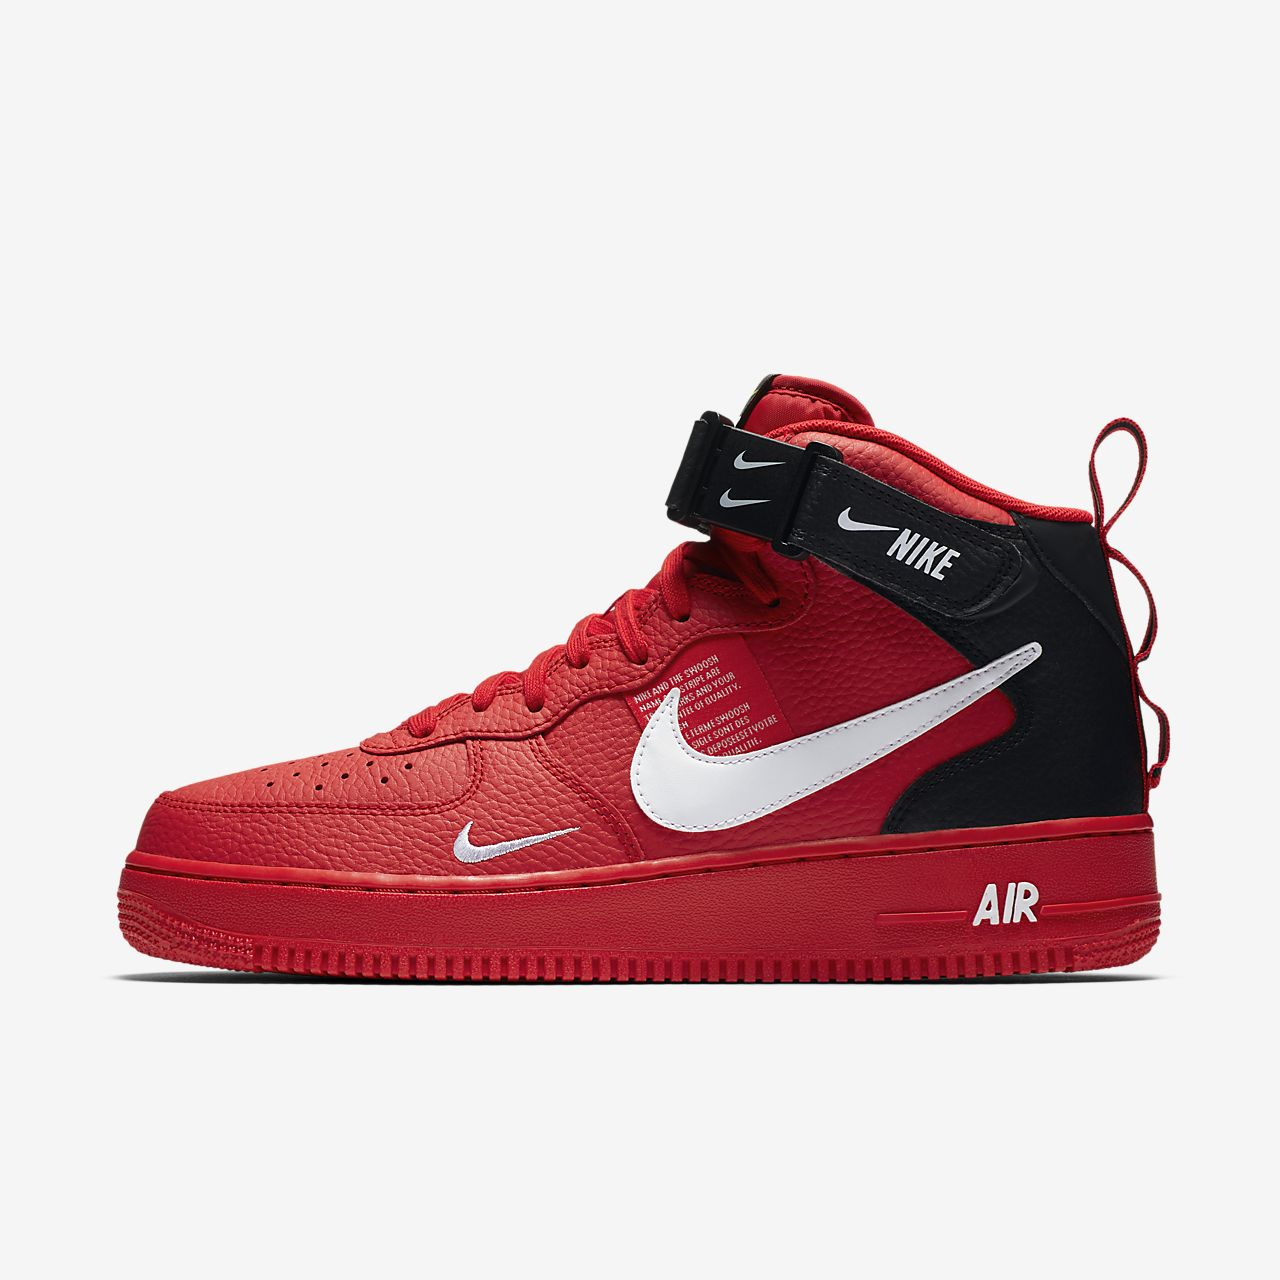 info for 2c995 23285 ... Nike Air Force 1 07 Mid LV8 Zapatillas - Hombre